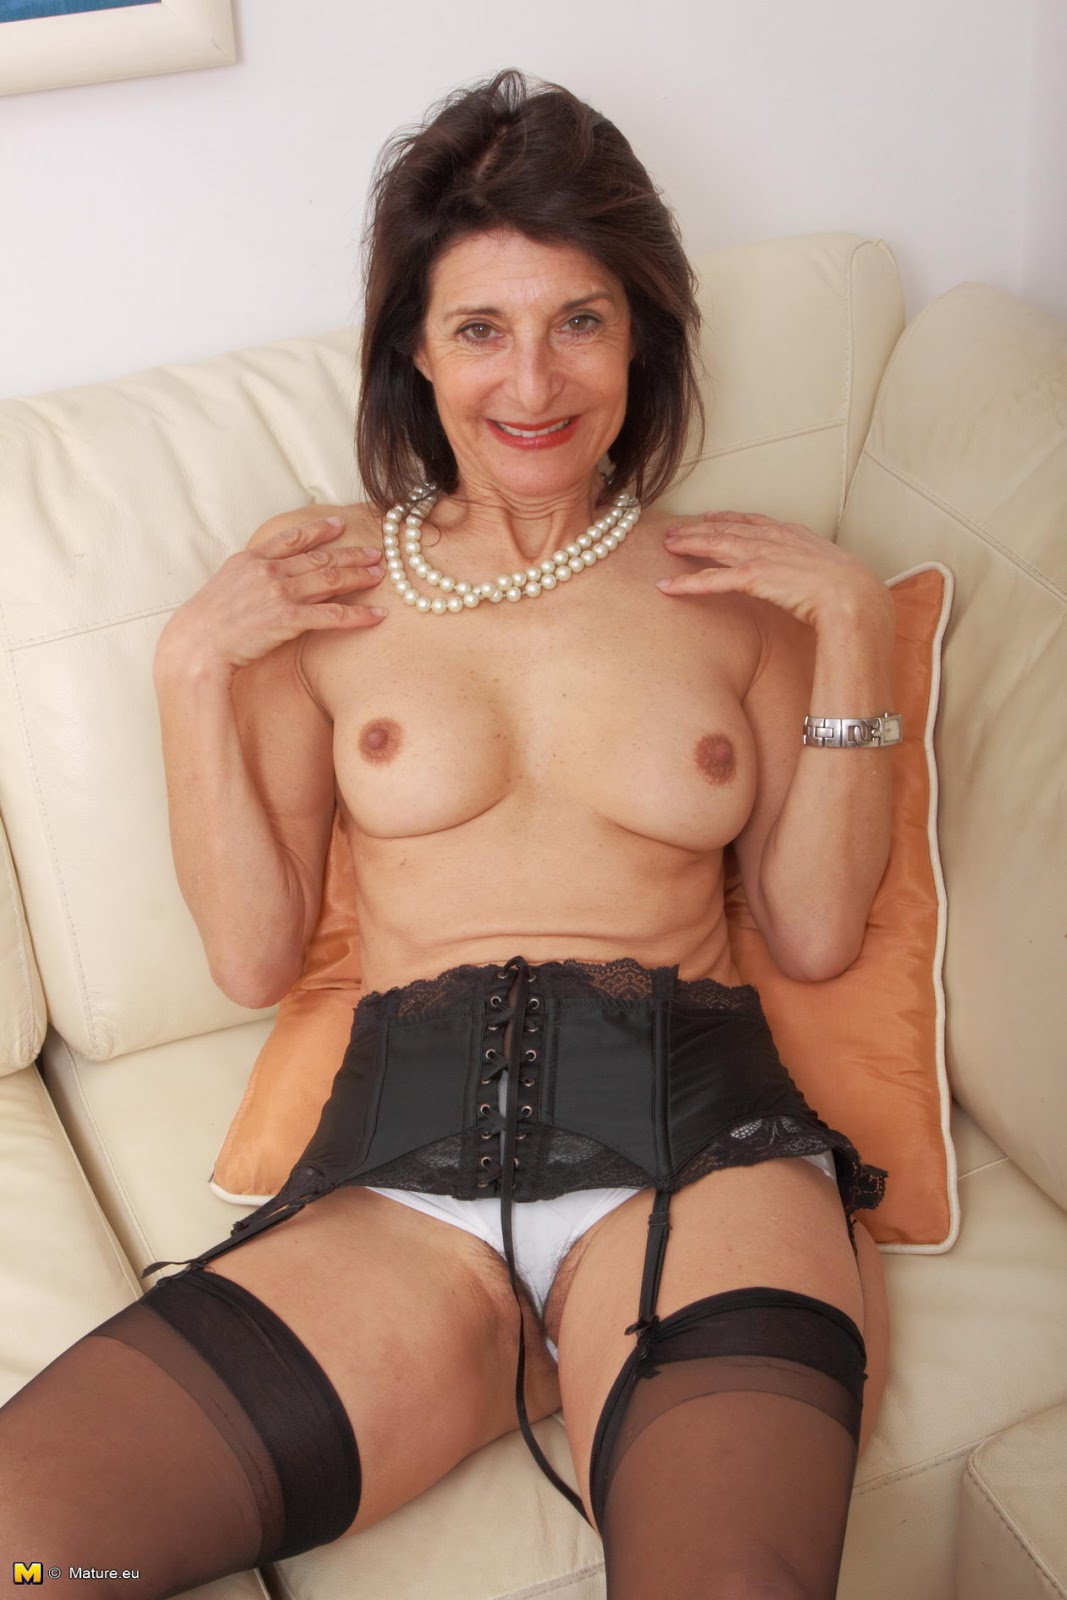 Older Emanuelle woman hairy